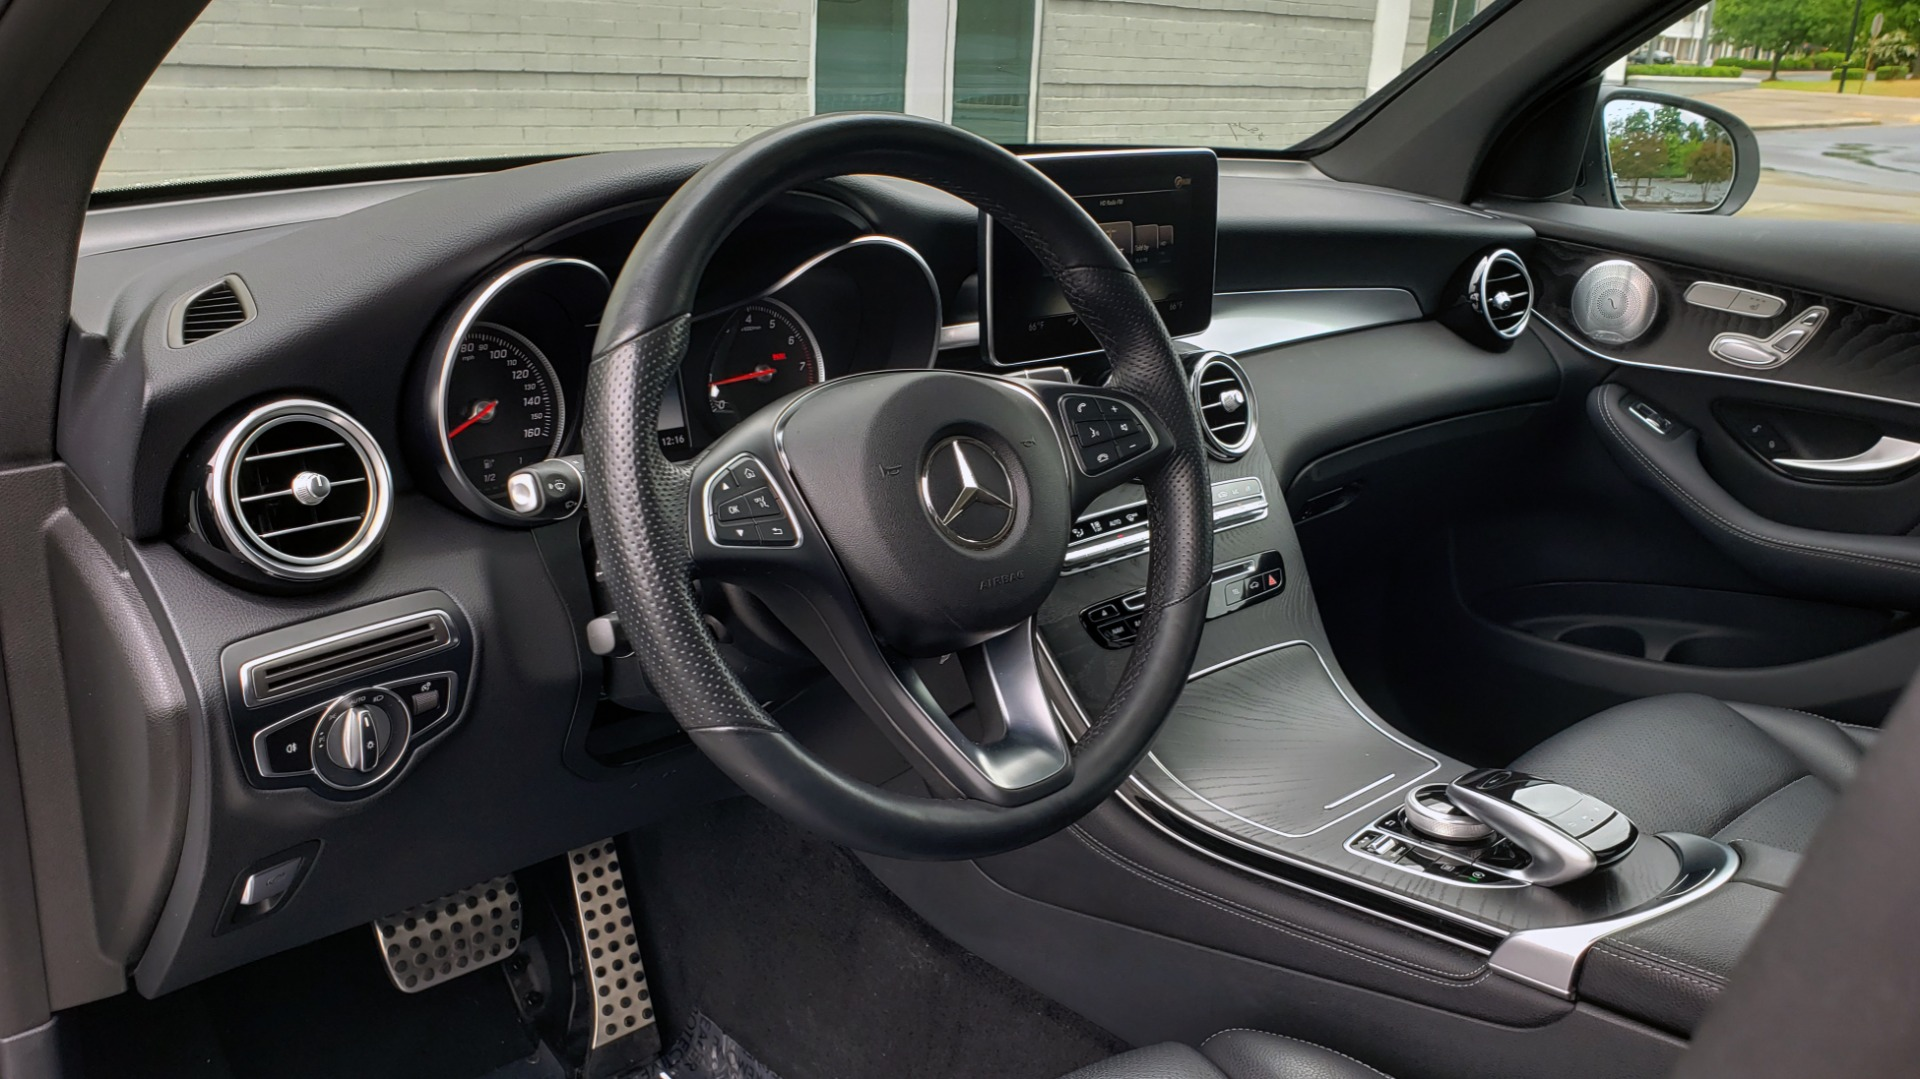 Used 2018 Mercedes-Benz GLC 300 4MATIC PREMIUM / NAV / BURMESTER SND / PANO-ROOF / REARVIEW for sale $35,495 at Formula Imports in Charlotte NC 28227 37